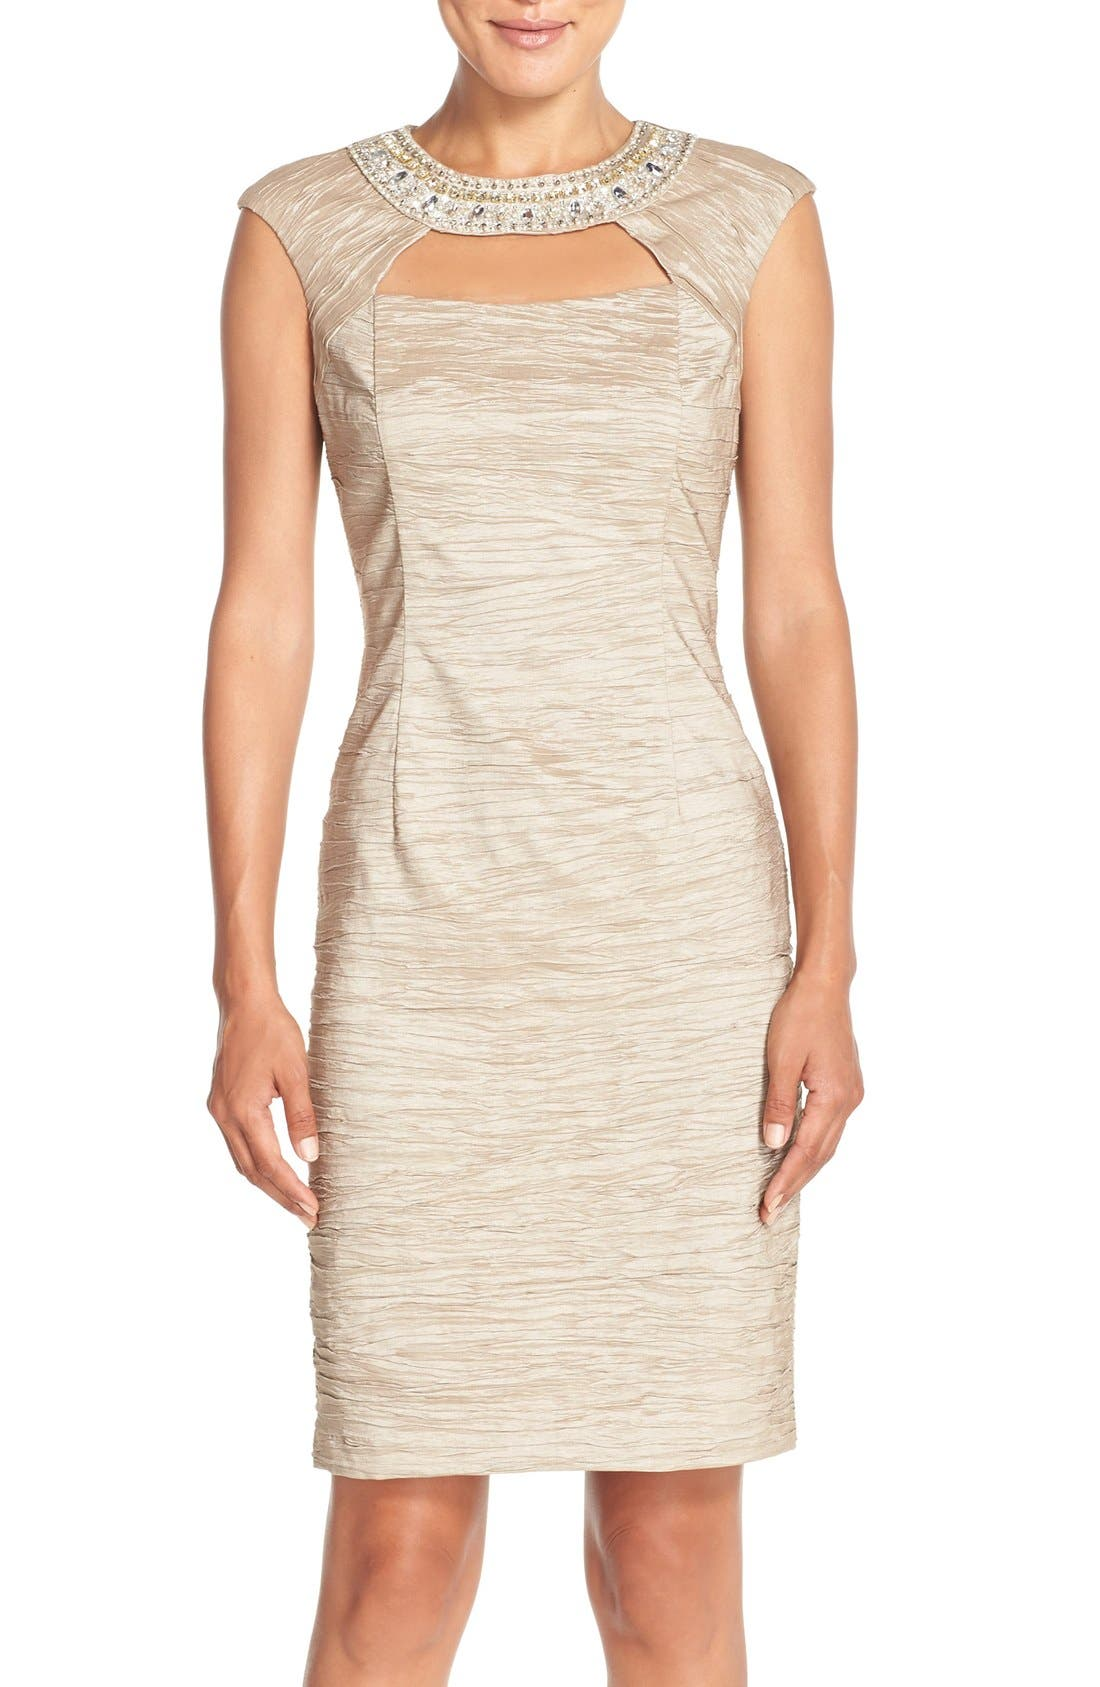 Alternate Image 1 Selected - Eliza J Embellished Crushed Taffeta Sheath Dress